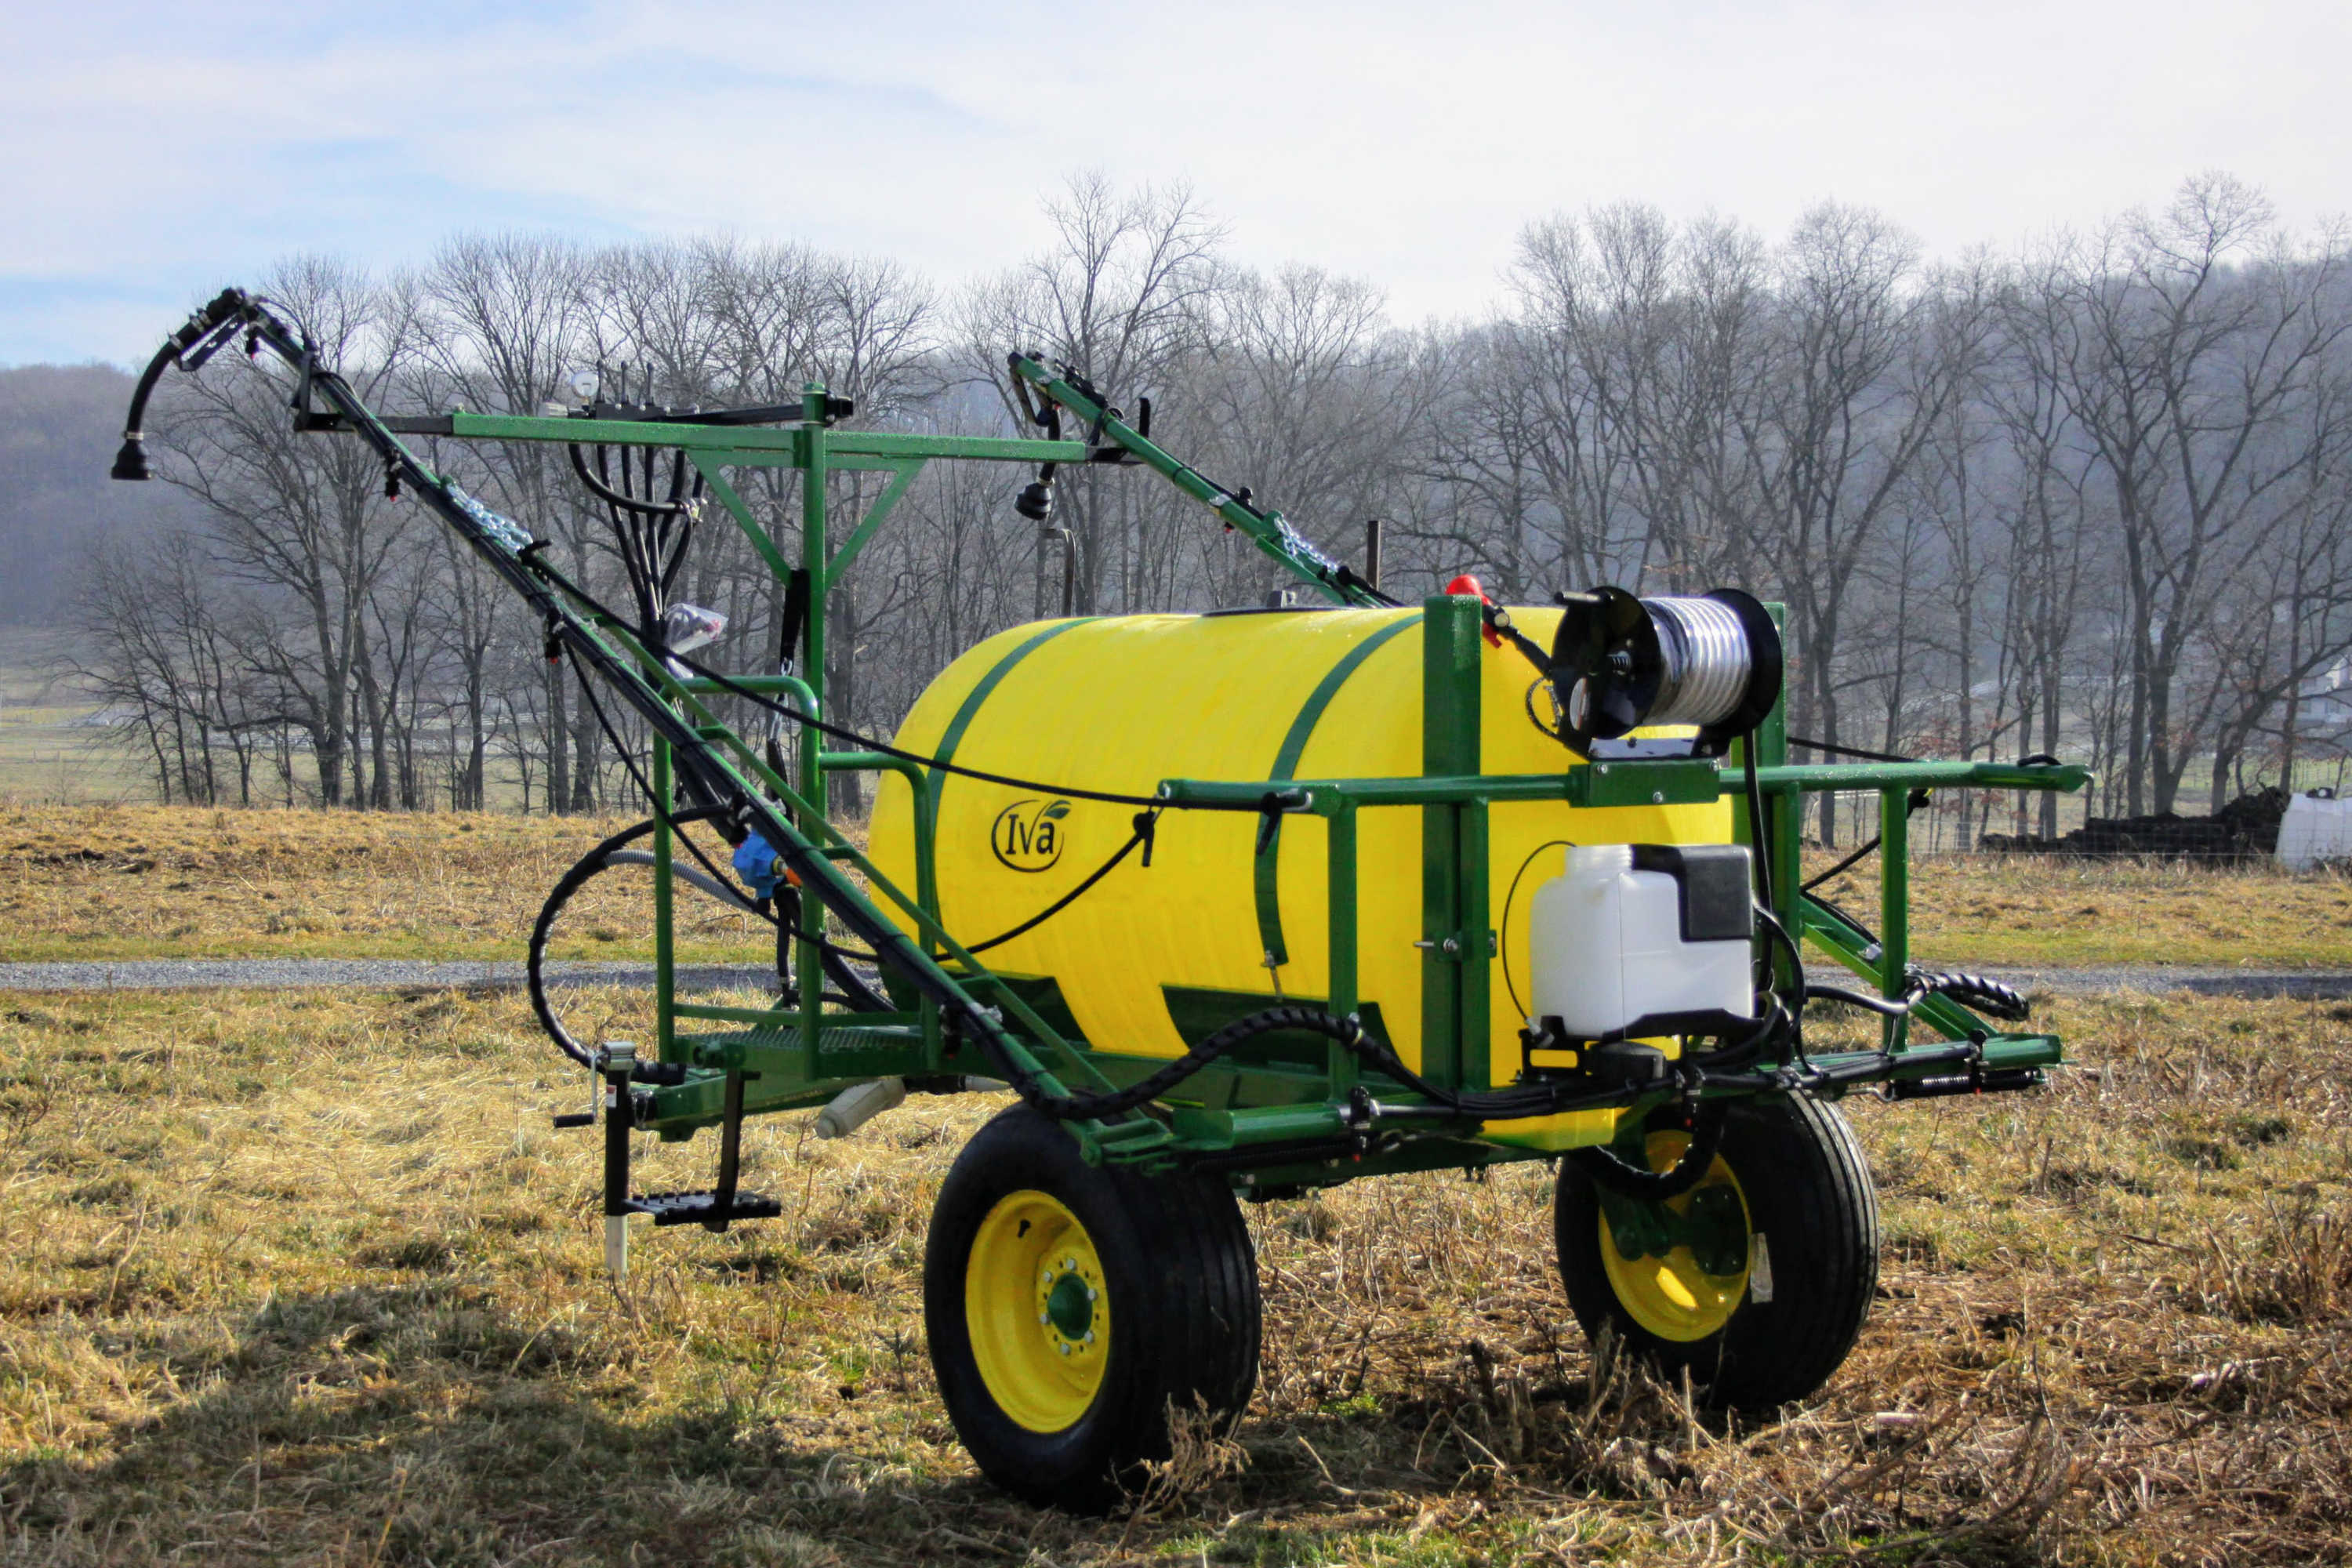 300 gallon Field Sprayer with 30' booms